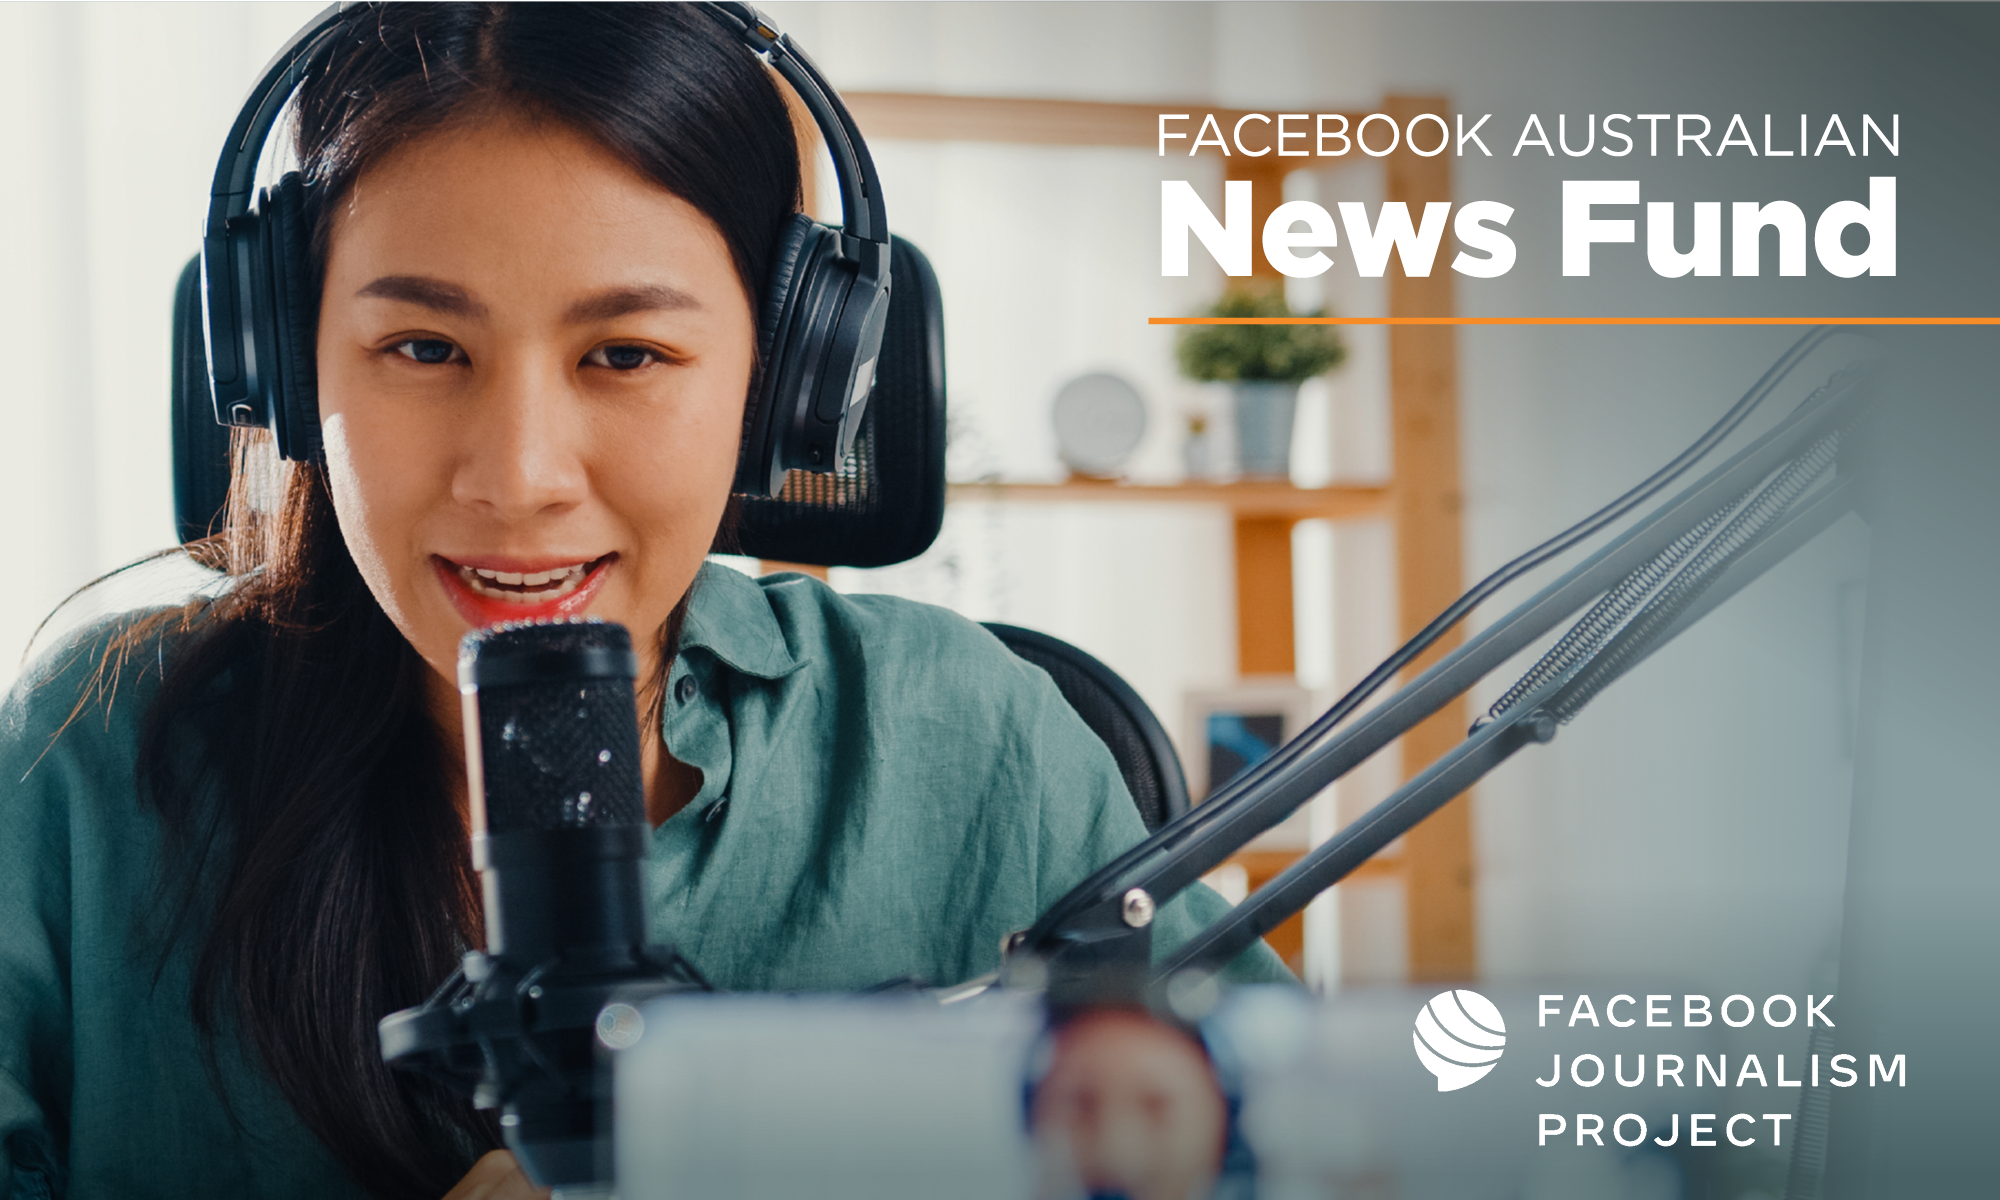 Applications open for the AU$15 million Facebook Australian News Fund